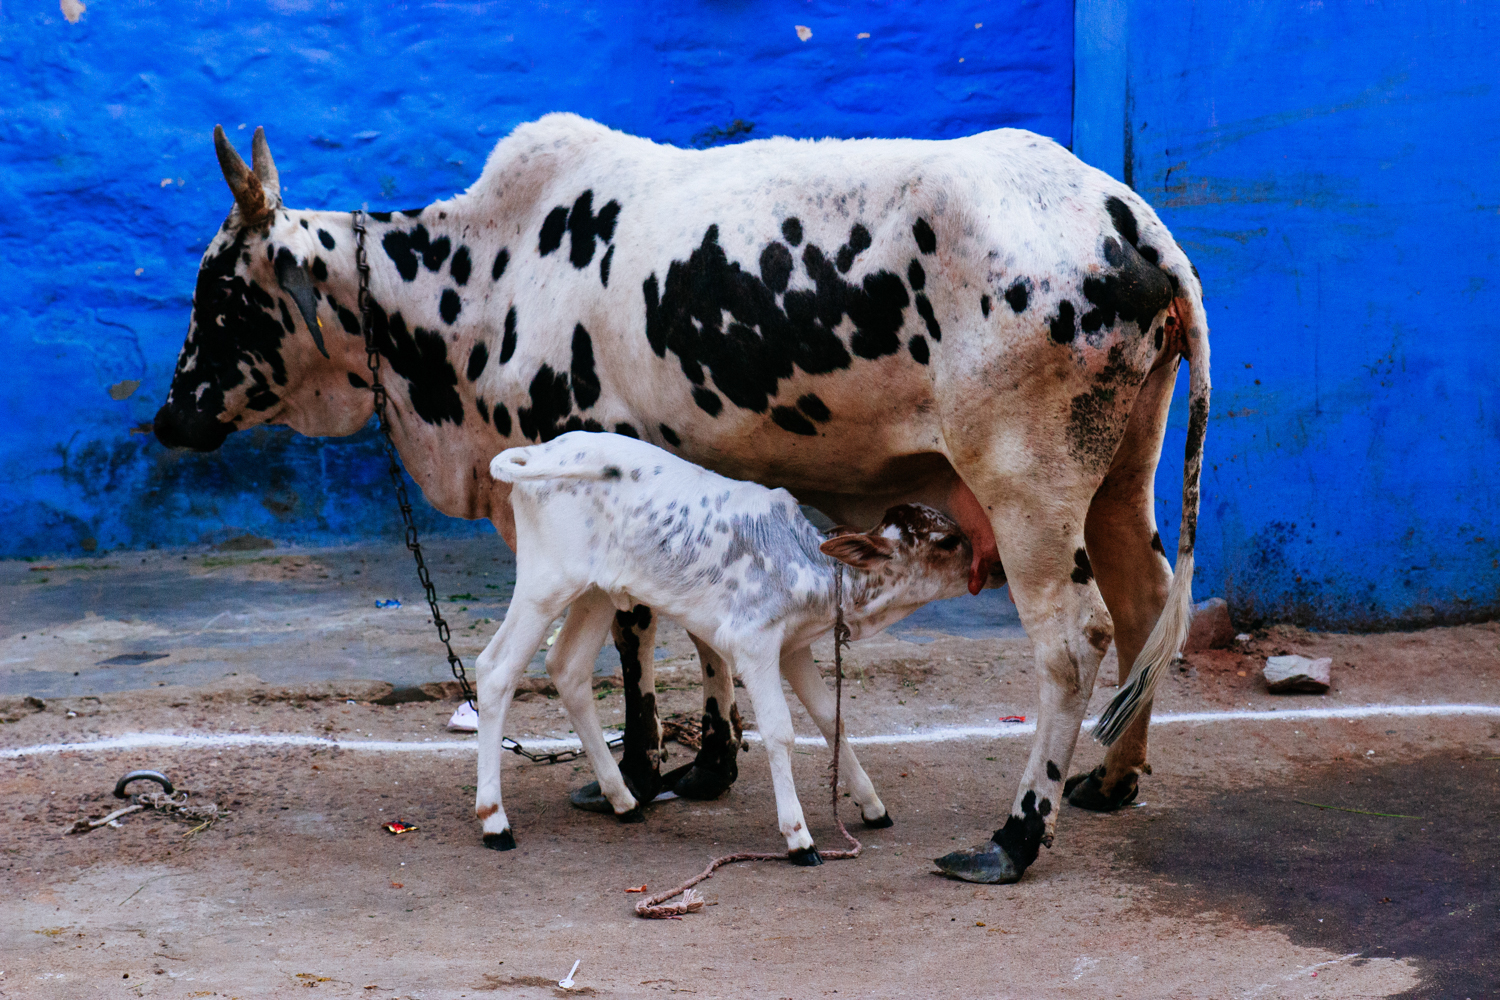 Cow and Calf, Jodhpur